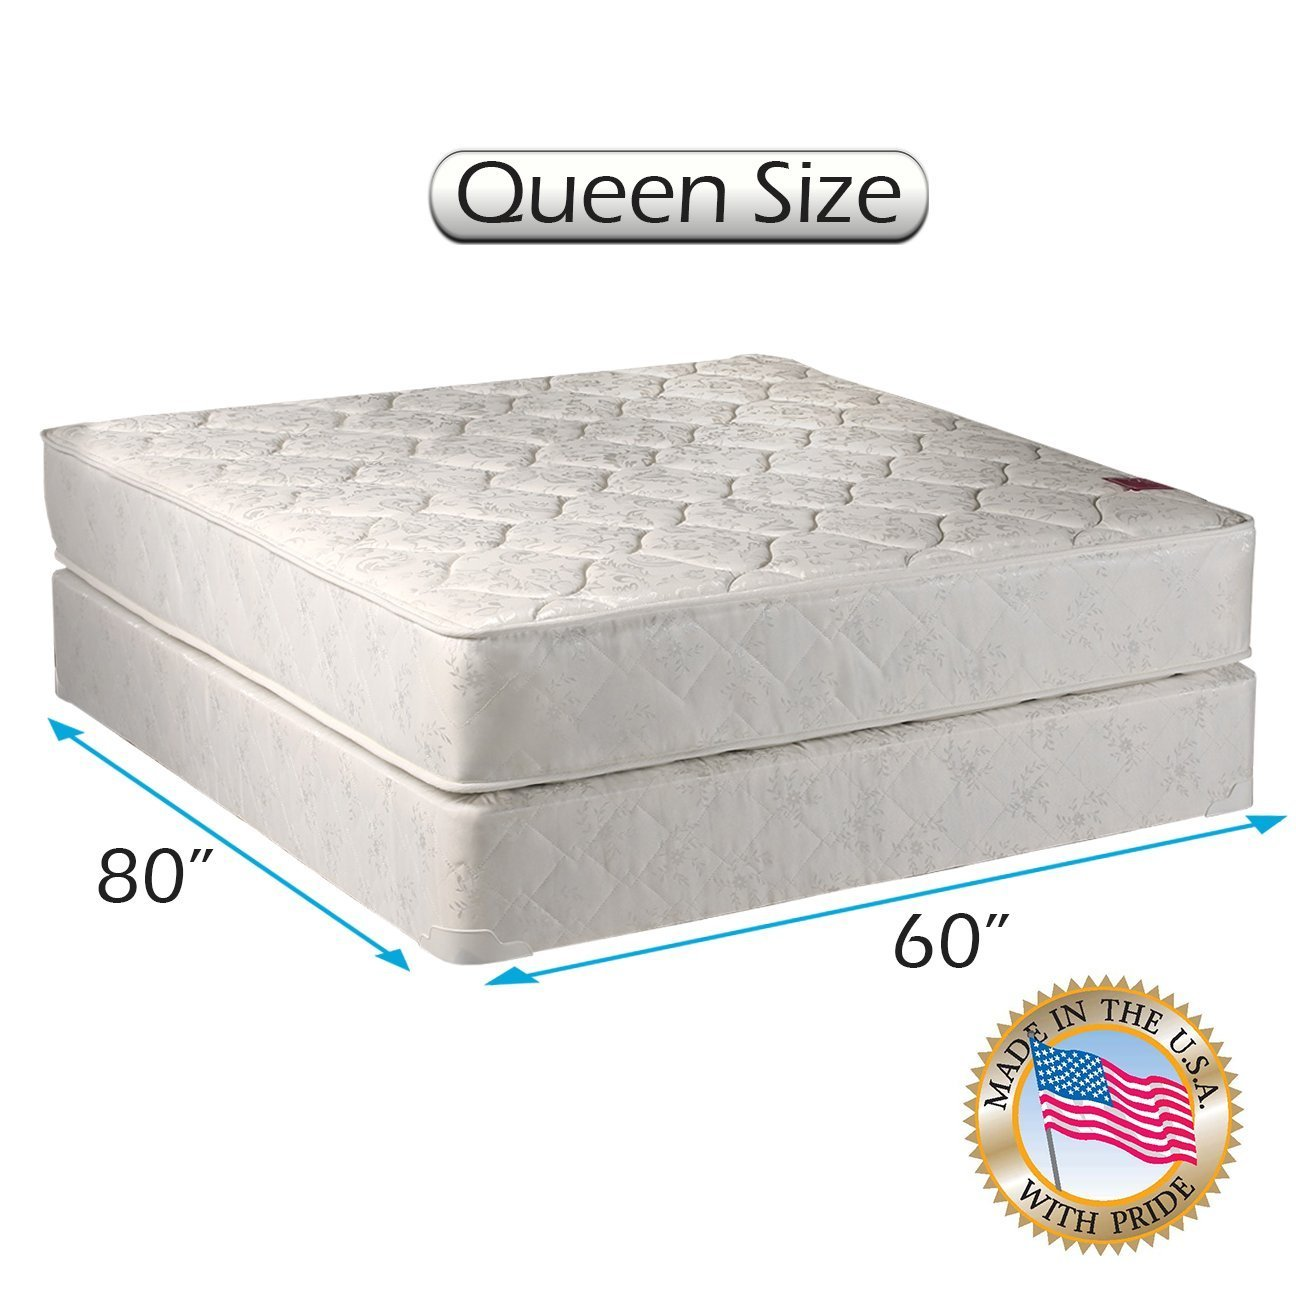 Amazon.com: Legacy Queen Size Mattress and Box Spring Set: Kitchen & Dining